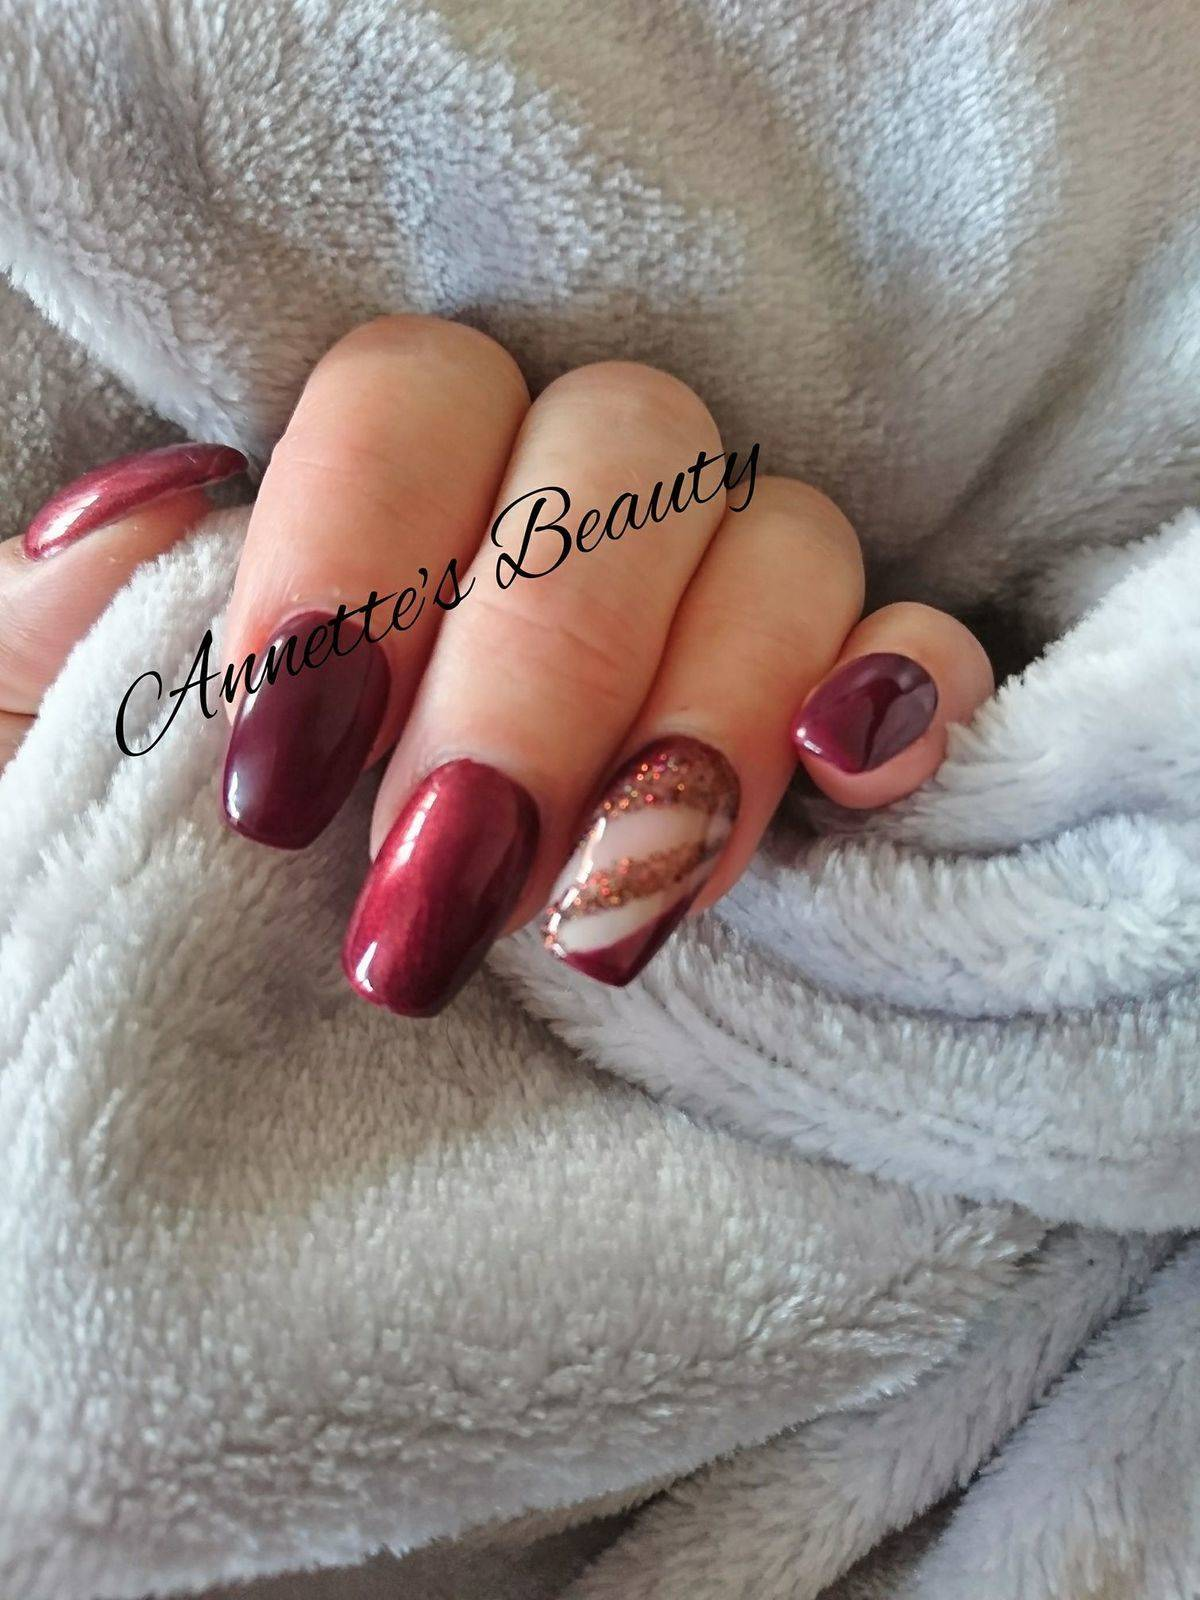 Do you get nail extensions but struggle getting to a salon? Annette's Beauty can provide acrylic extensions in the comfort of your own home